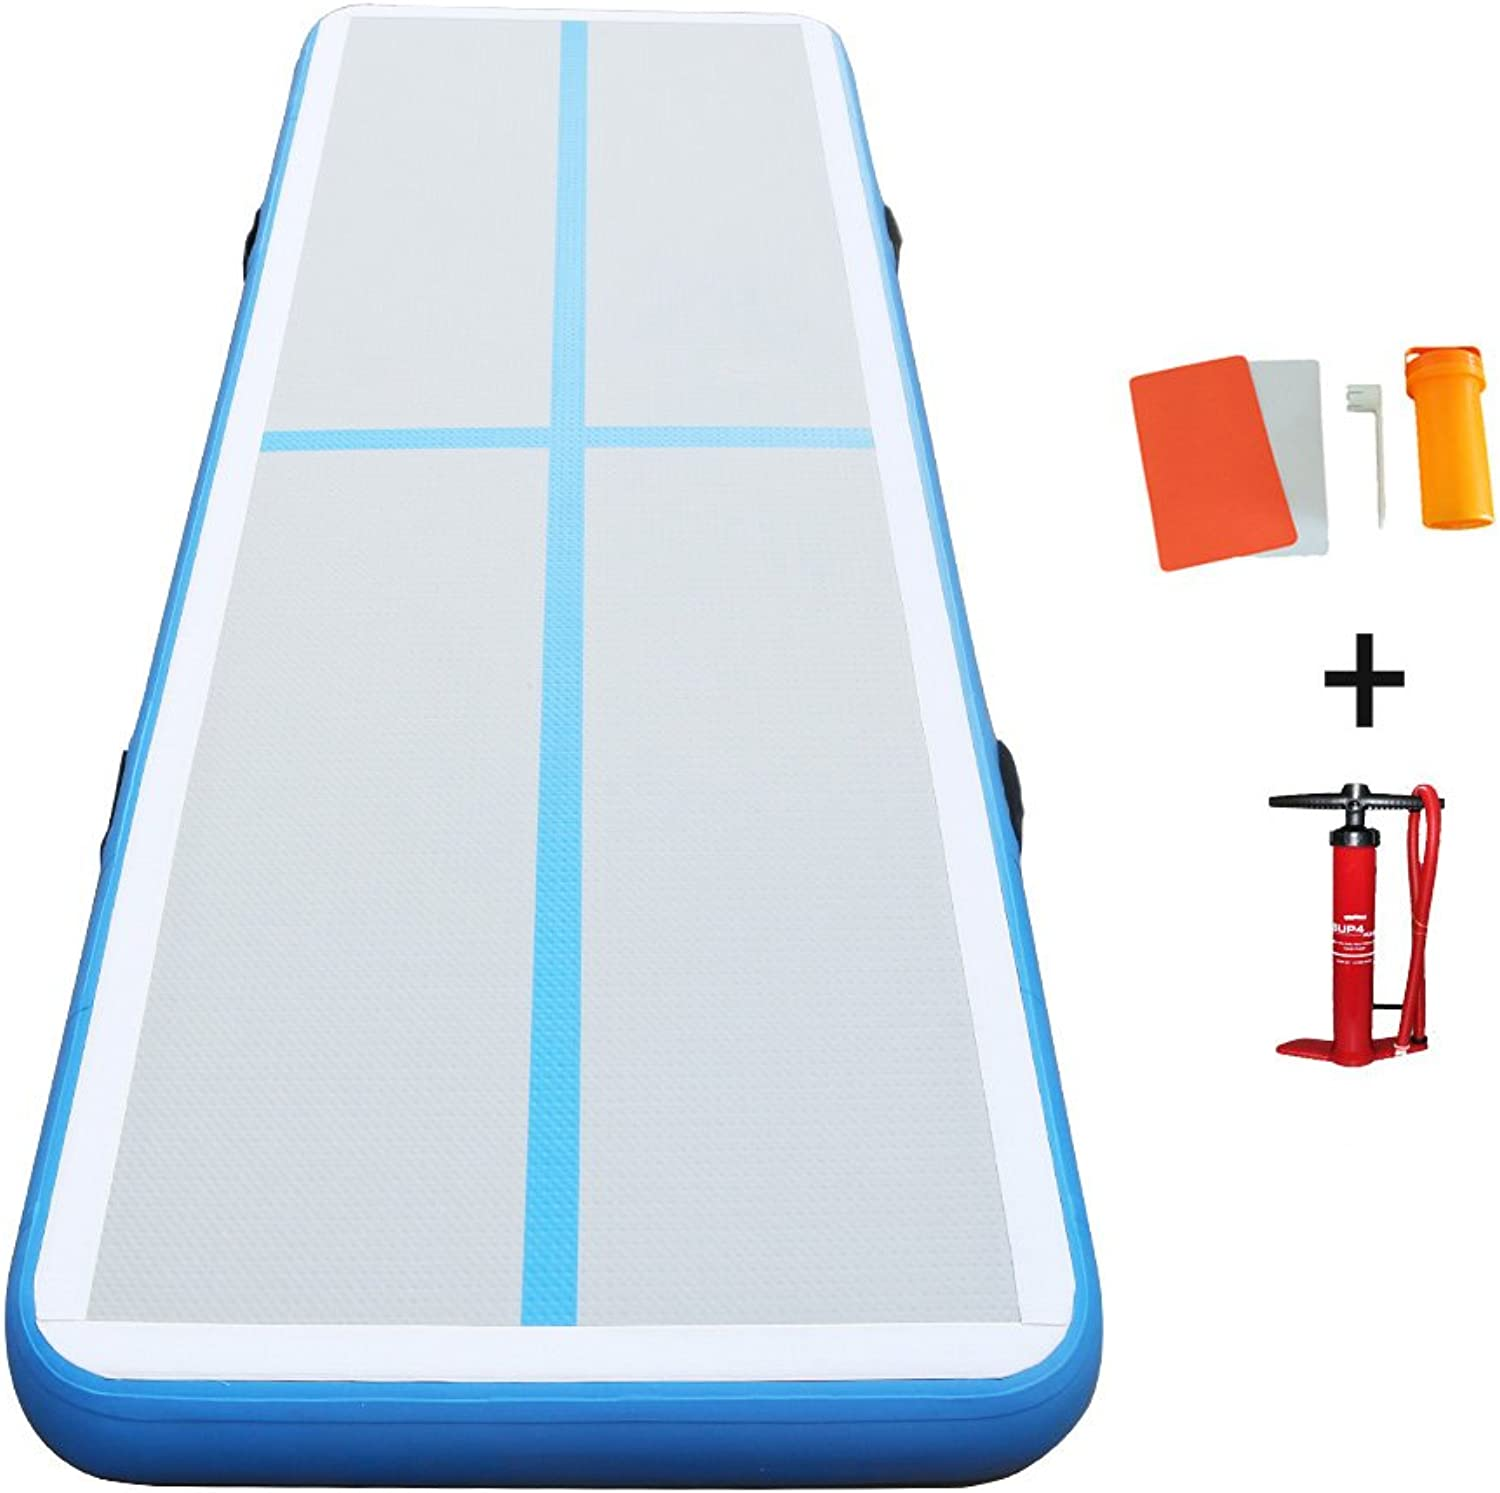 Darget Gymnastic Air Track Tumbling Mat with Free Pump for Home Use, Cheerleading, Water, Park and Beach